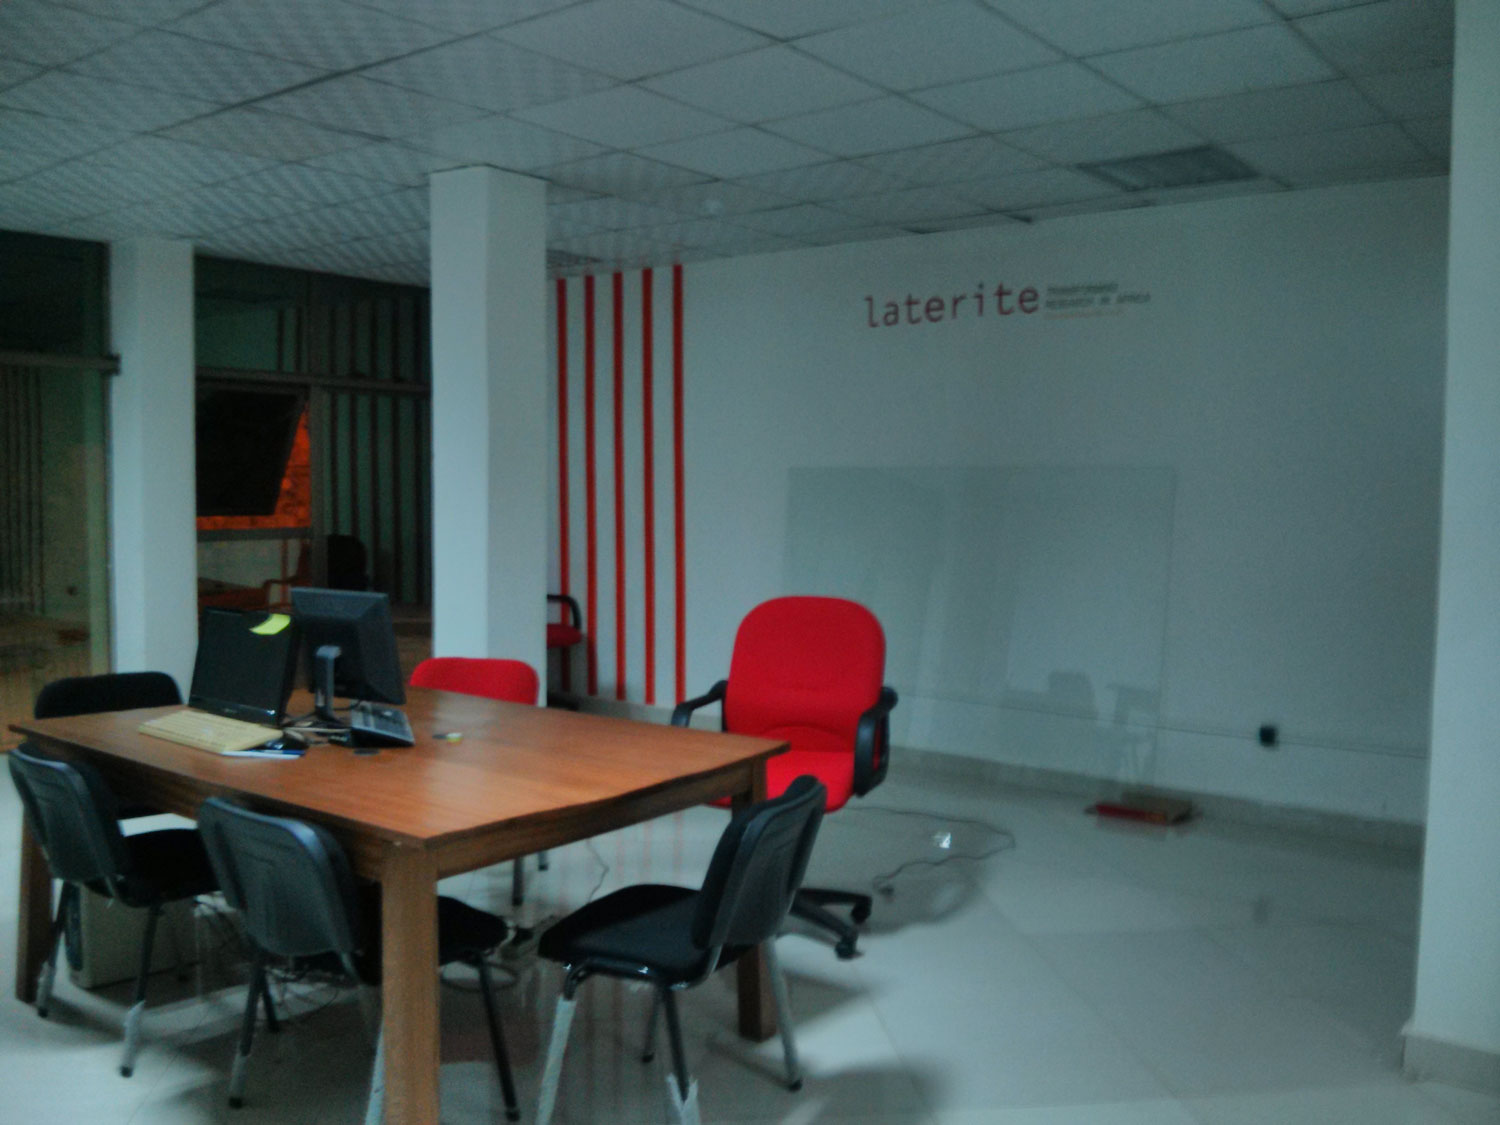 Laterite opens its new office space in Kigali and is joined by the International Growth Center